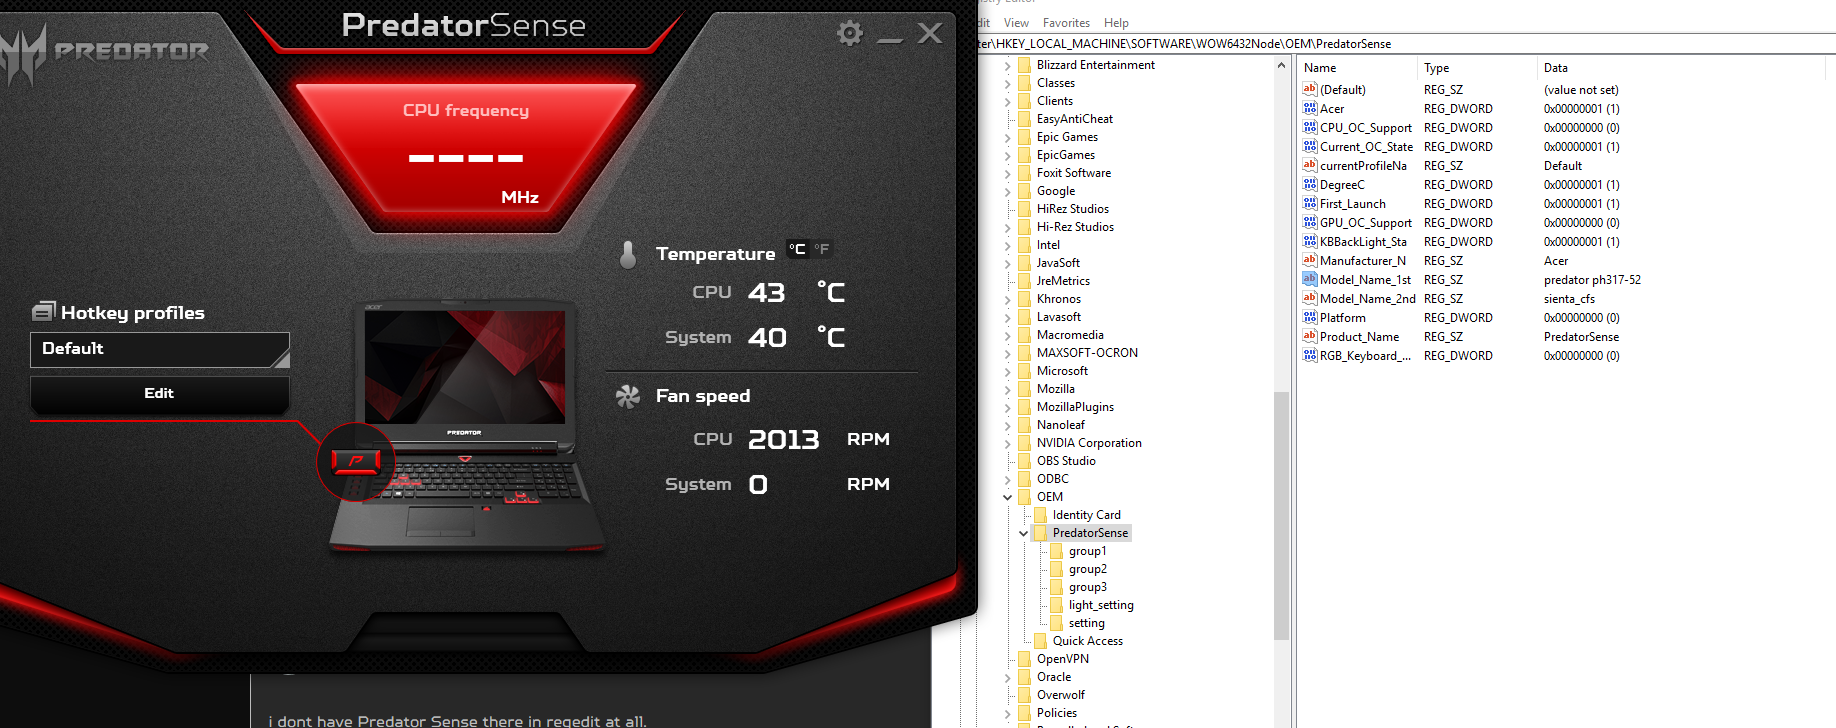 Acer Predator Sense can't be installed on ACER HELIOS 300